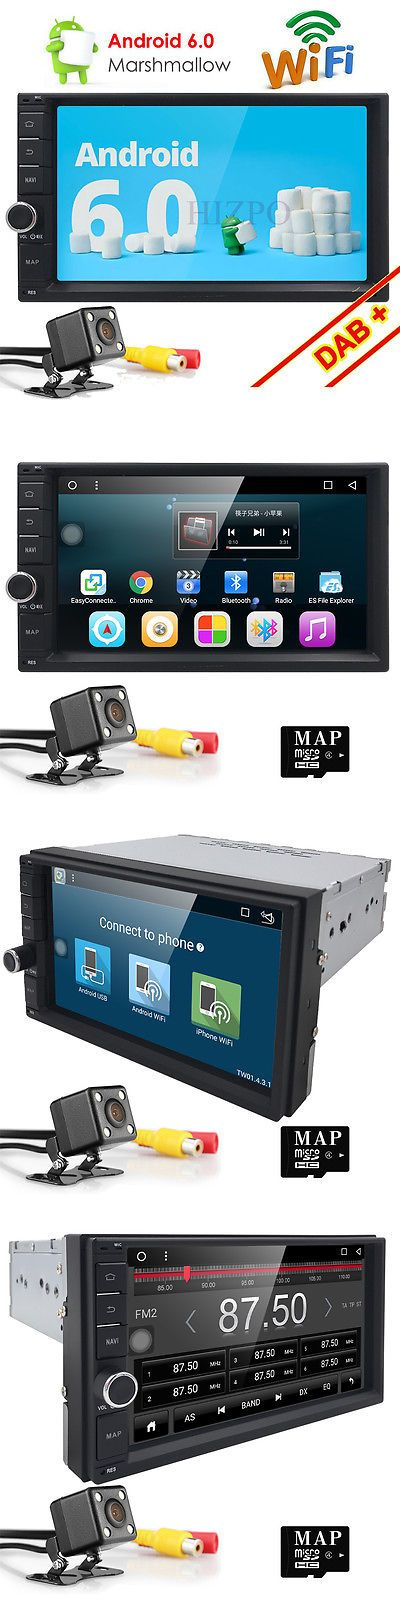 Vehicle Electronics And GPS: 7 Gps Navi Android 6.0 Double 2Din Car Auto Stereo Wifi 3G Bt Dab Radio+ Cam -> BUY IT NOW ONLY: $179 on eBay!